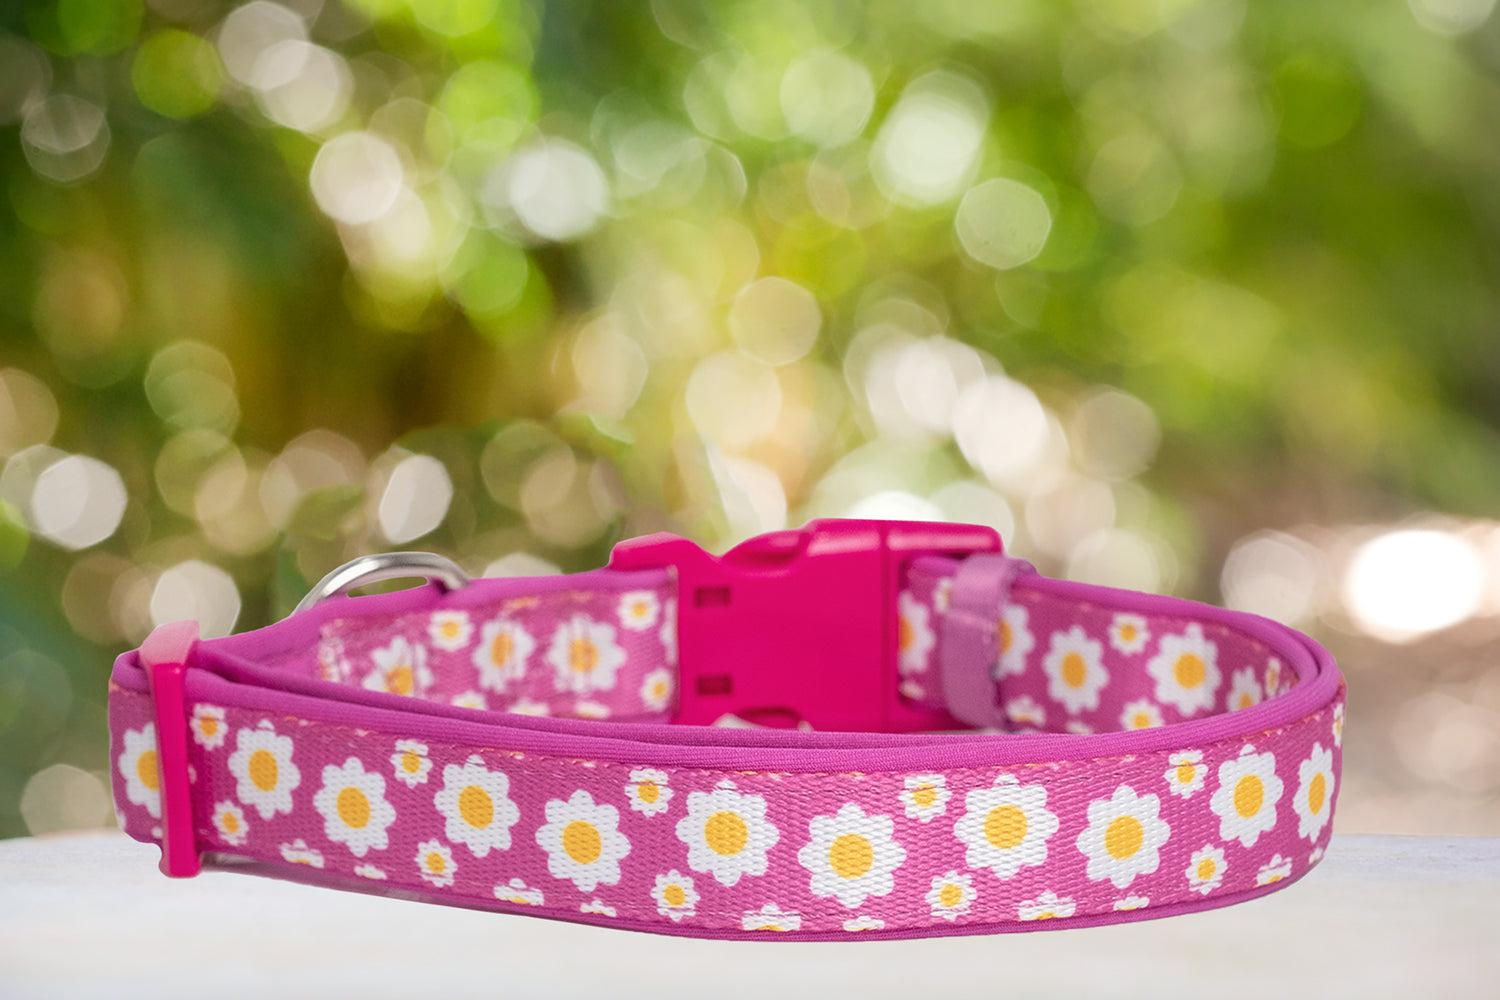 Retro Pink Daisy Dog Collar (Neoprene)-Dizzy Dog Collars-Dizzy Dog Collars